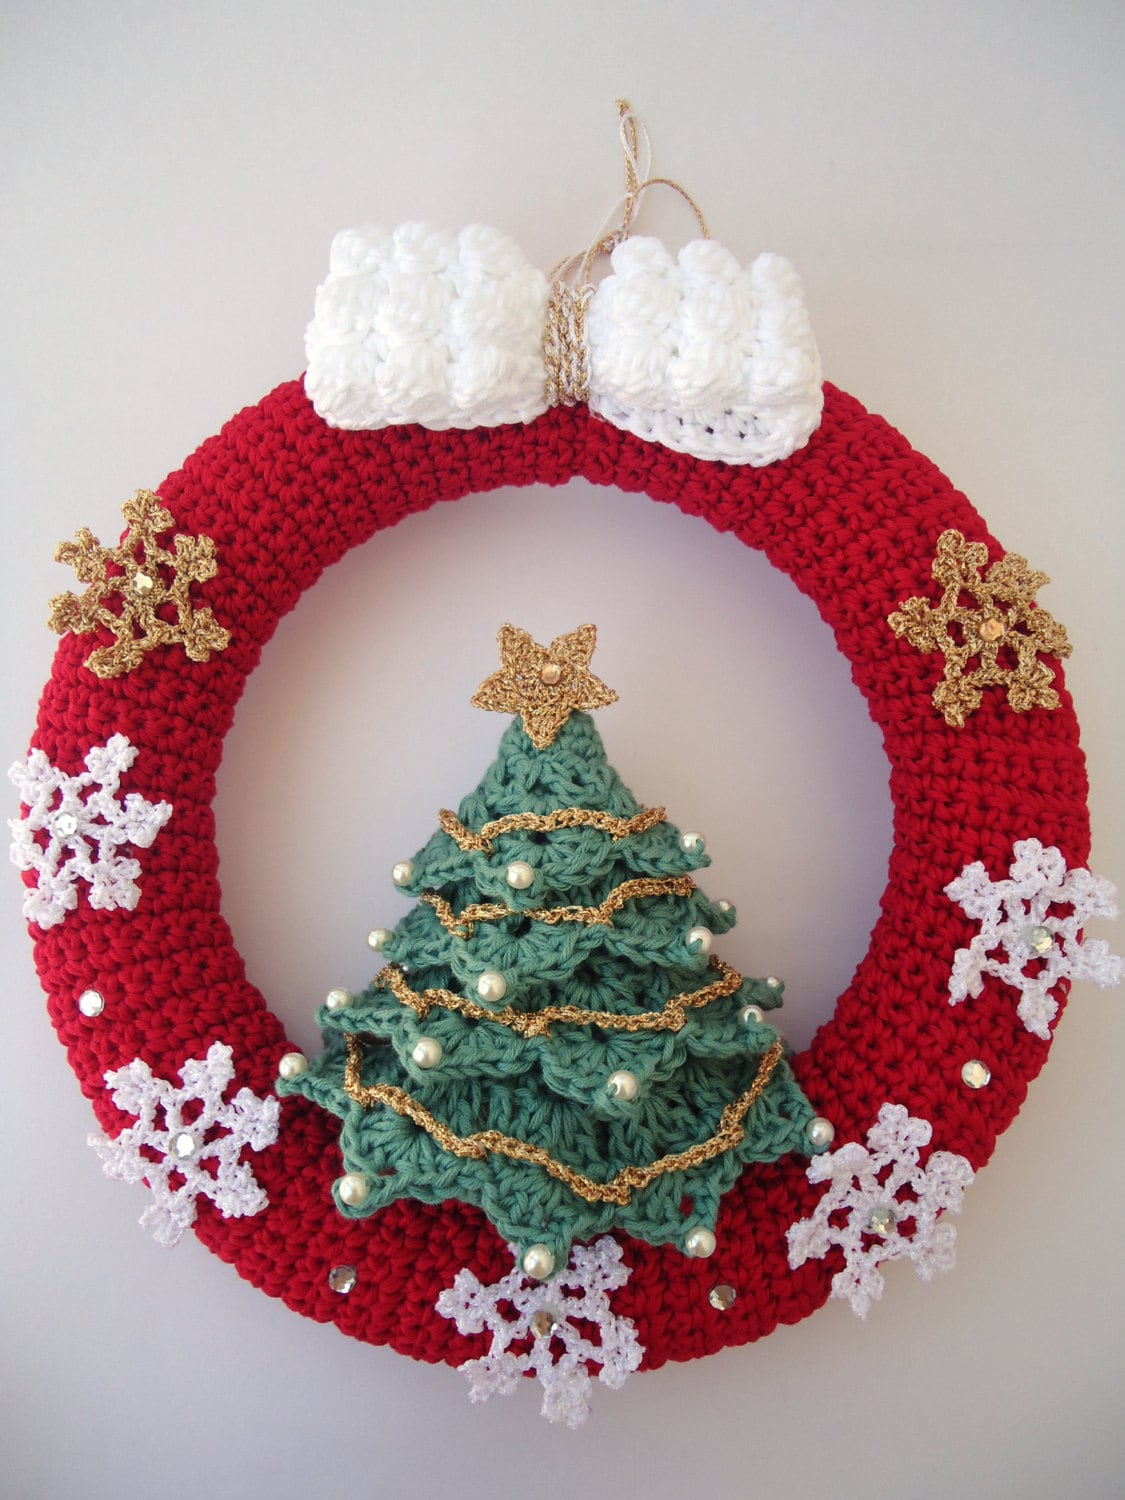 Christmas Wreath In Crochet Door Hanger Decoration